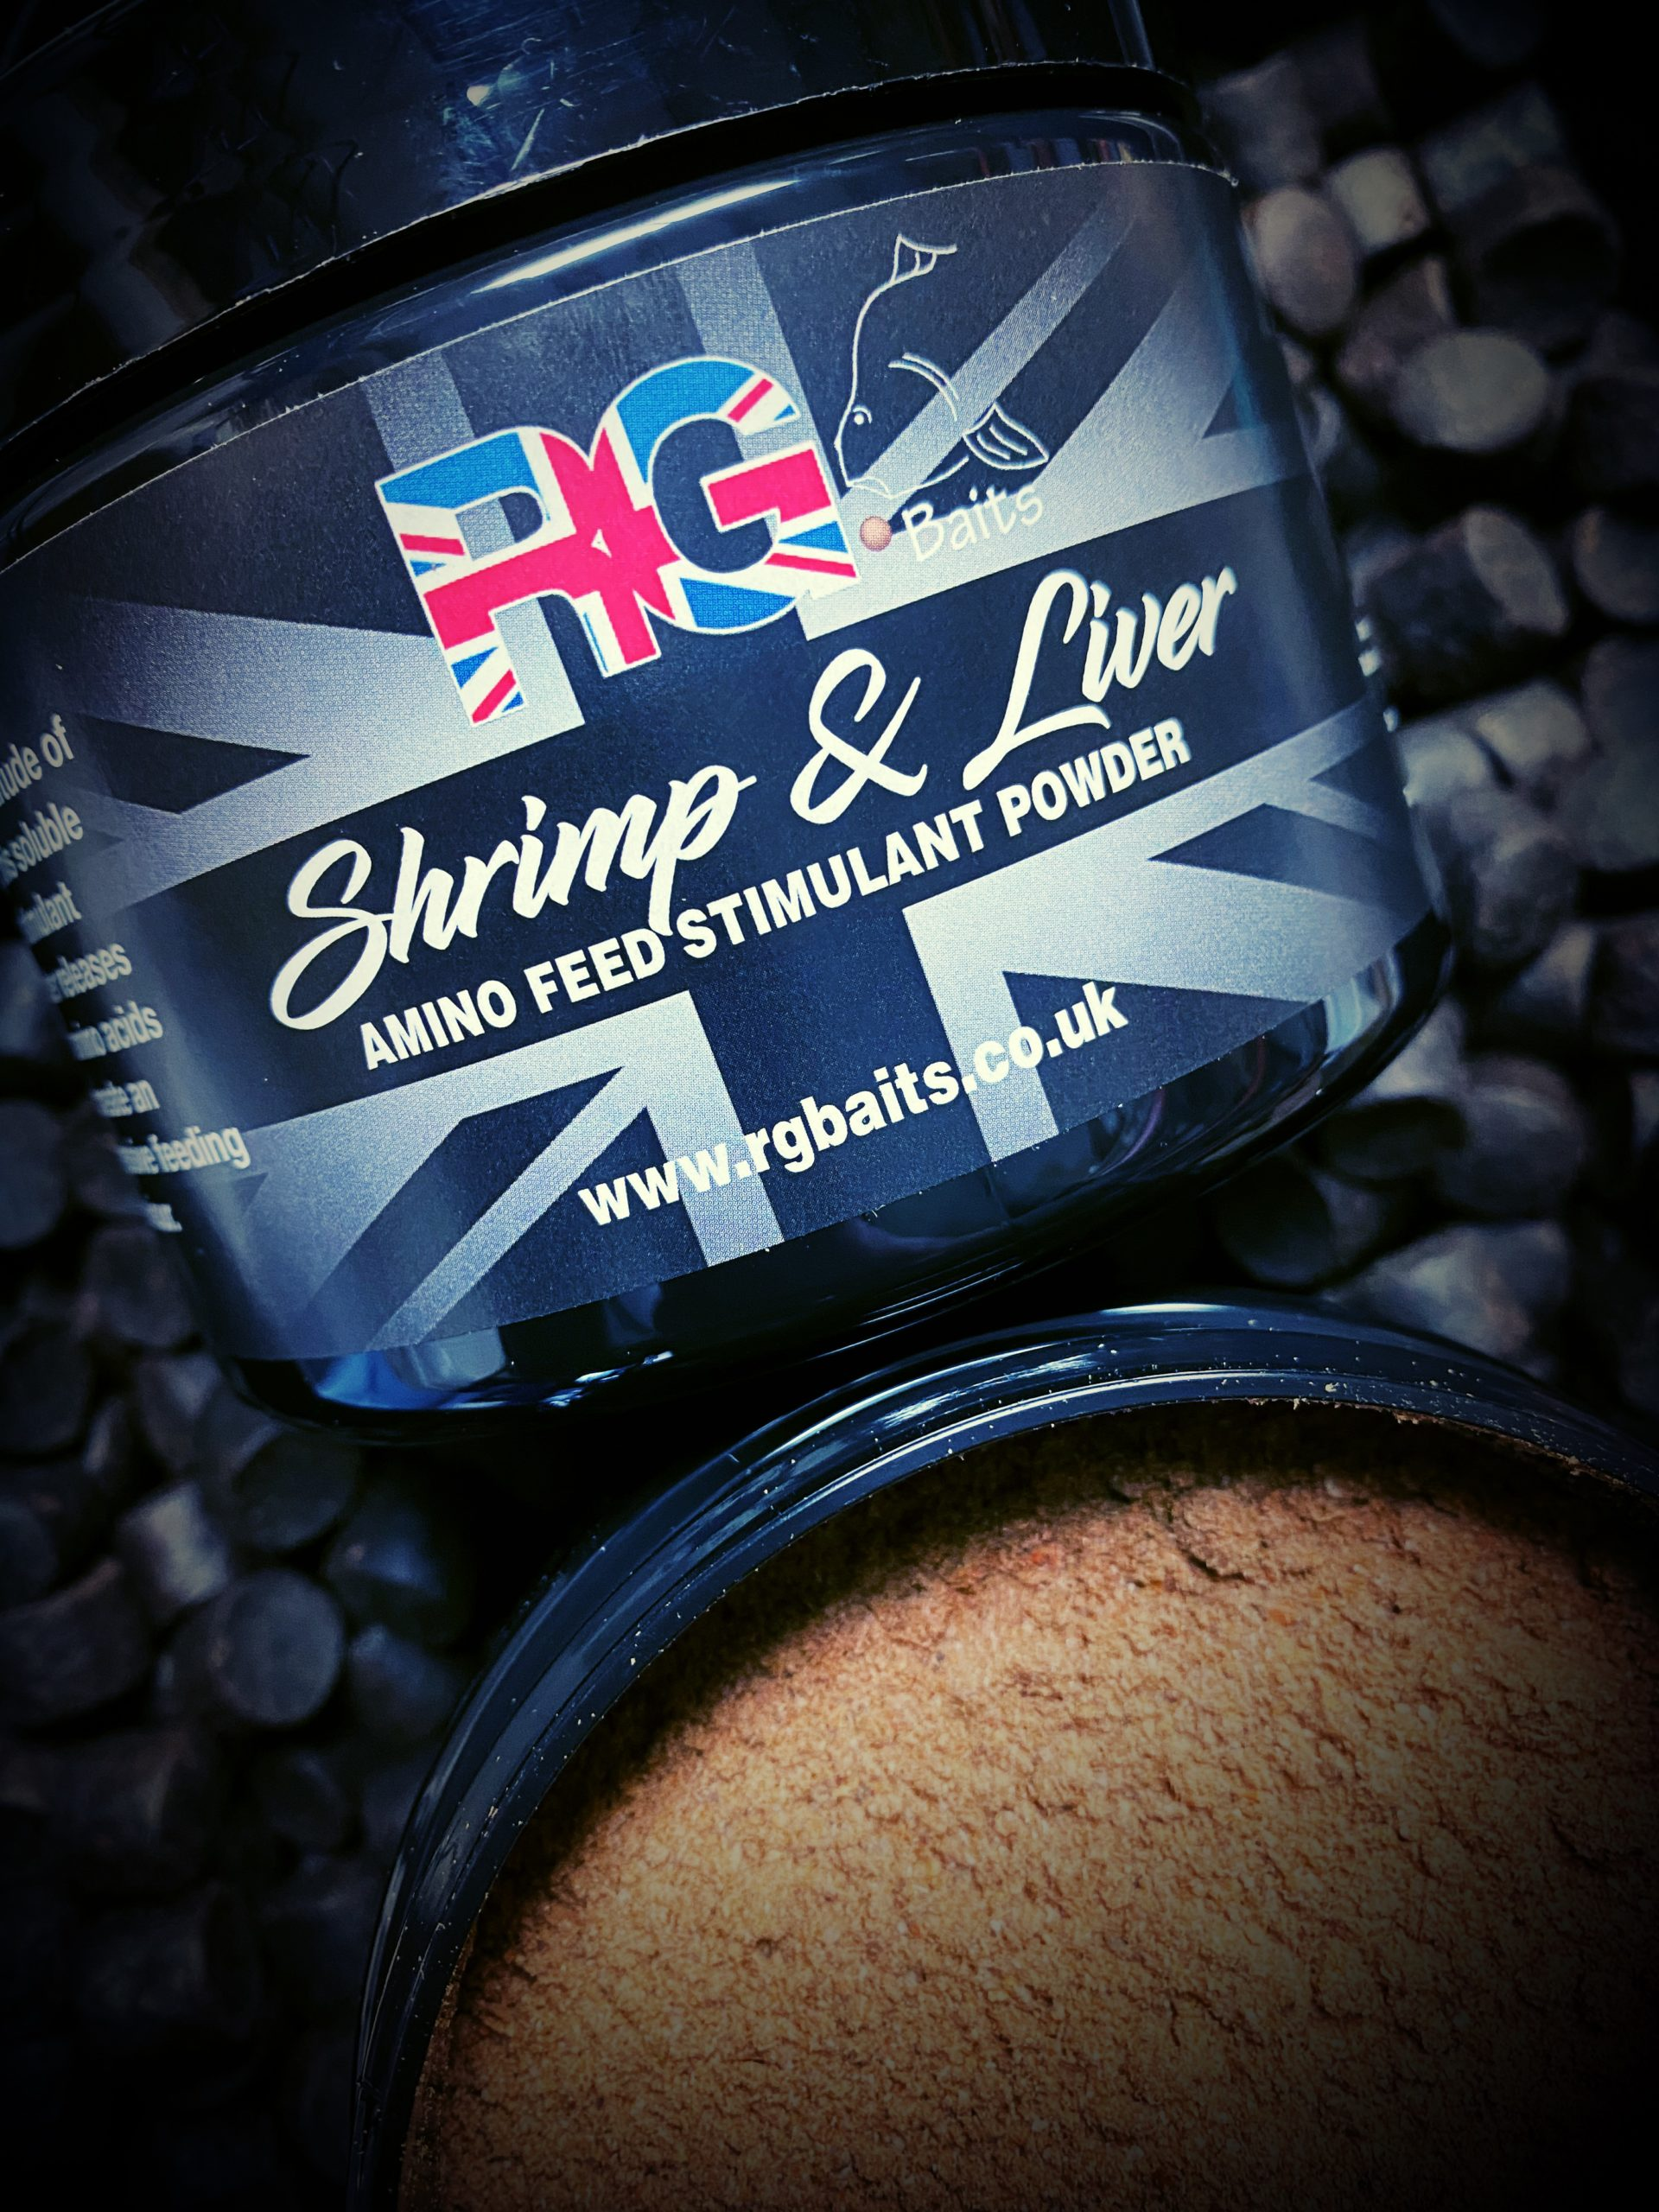 🇬🇧🇬🇧🇬🇧 Shrimp & Liver Powder 🇬🇧🇬🇧🇬🇧